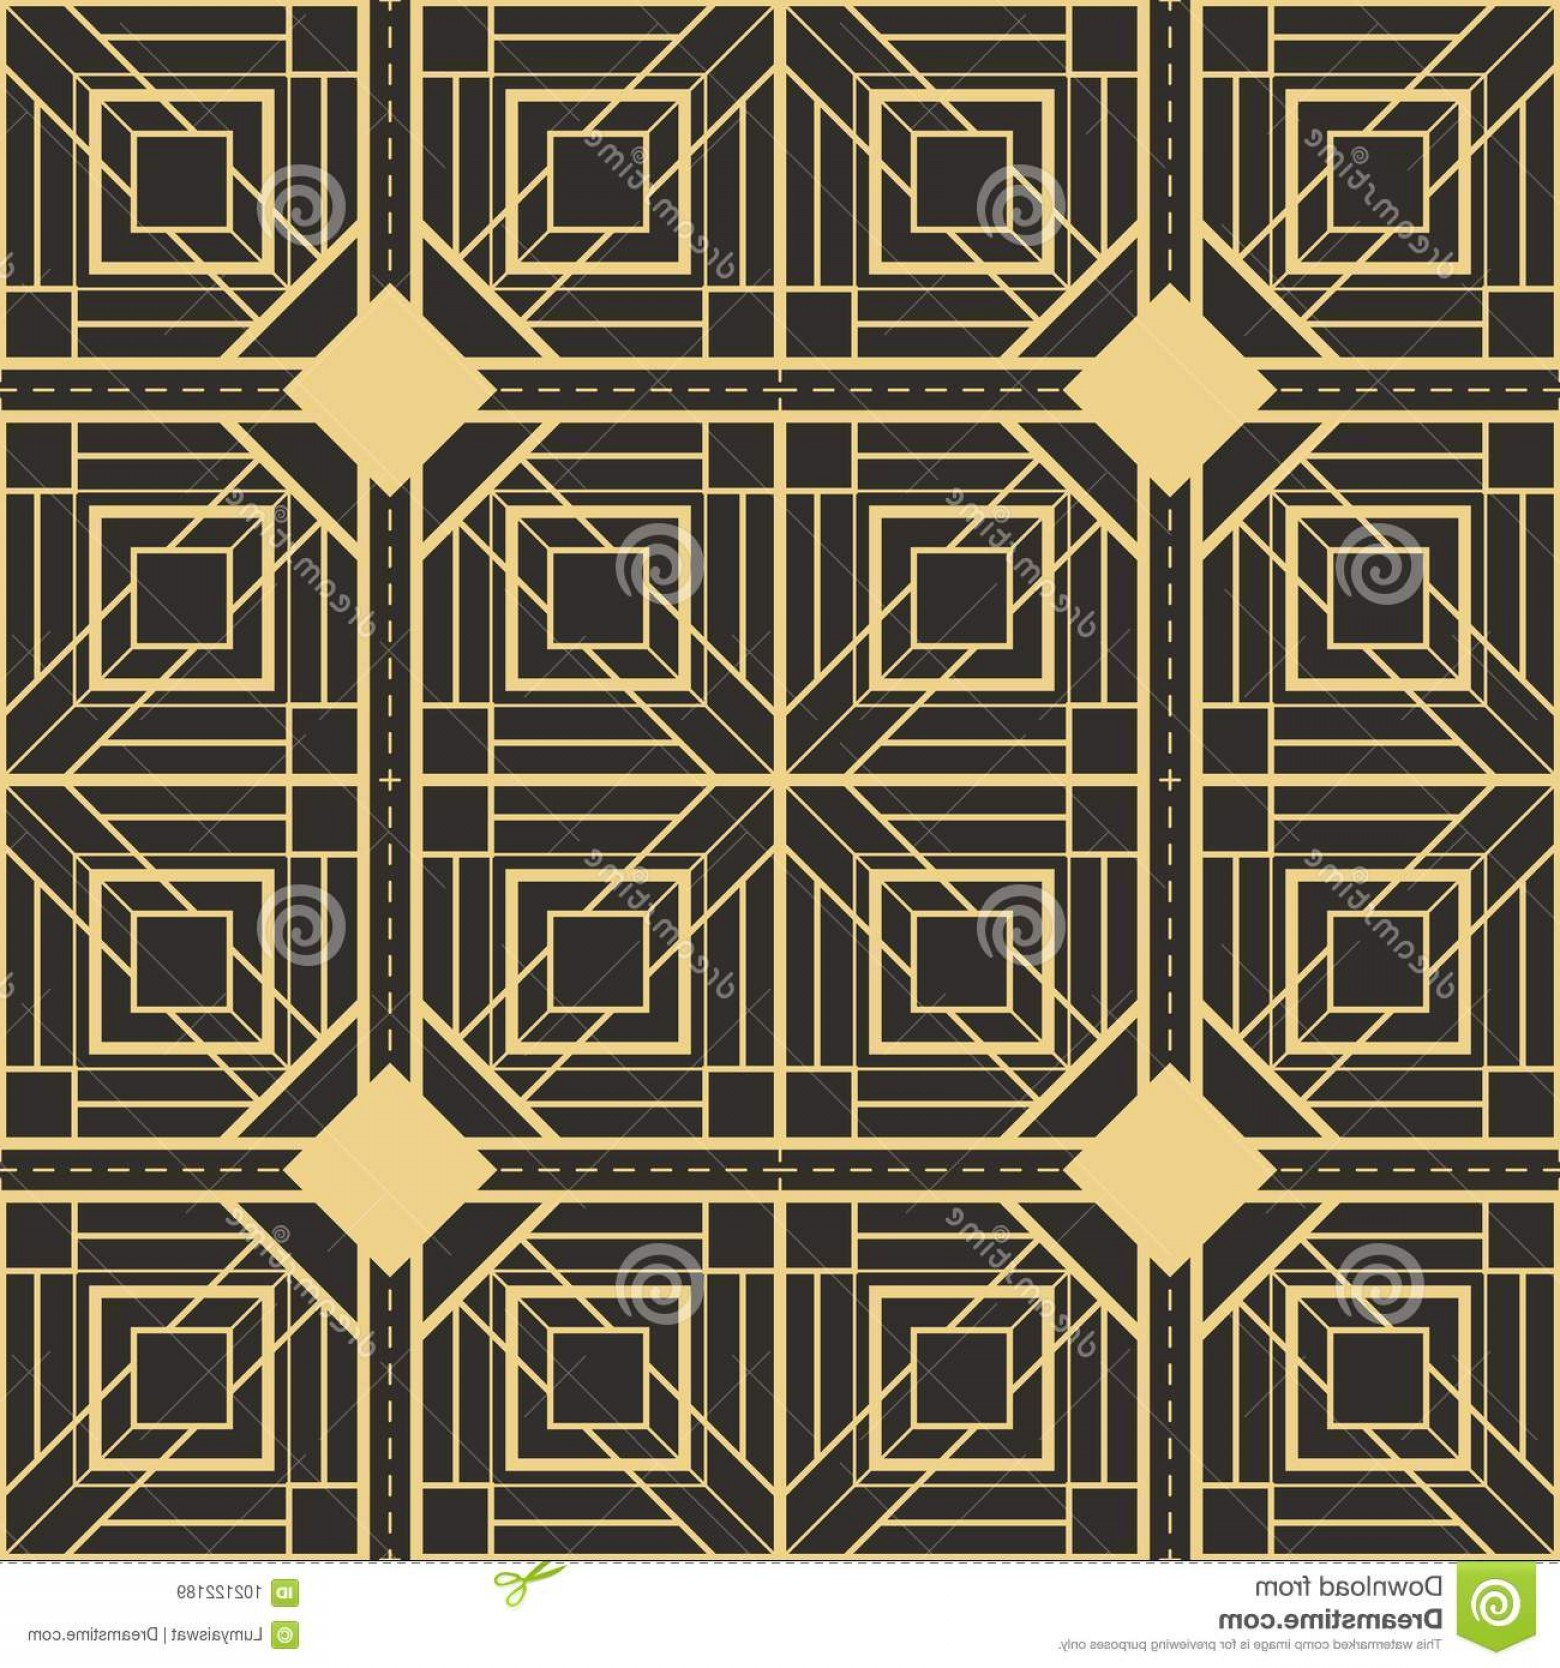 Art Deco Tile Vector Design: Abstract Art Deco Seamless Pattern Vector Modern Tiles Monochrome Background Image